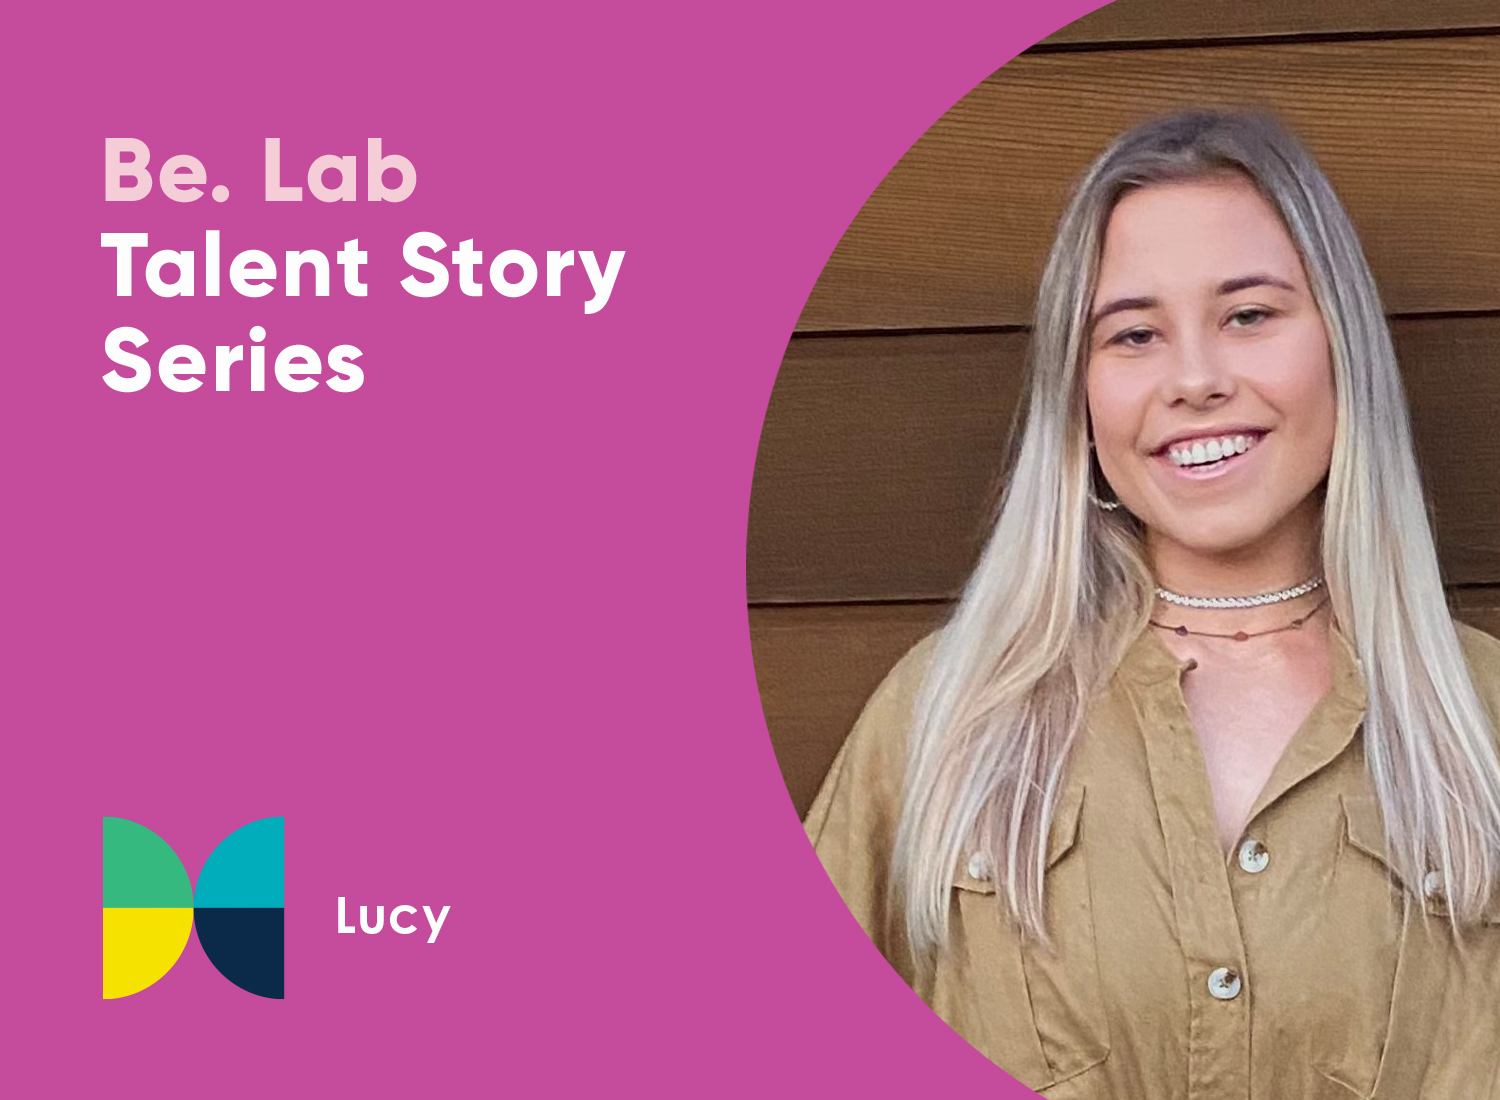 """Pink background with the text """"Be. Lab Talent Story Series: Lucy"""". A colourful butterfly icon. A photo of a young woman with blonde hair. She is smiling and wearing a khakhi top."""